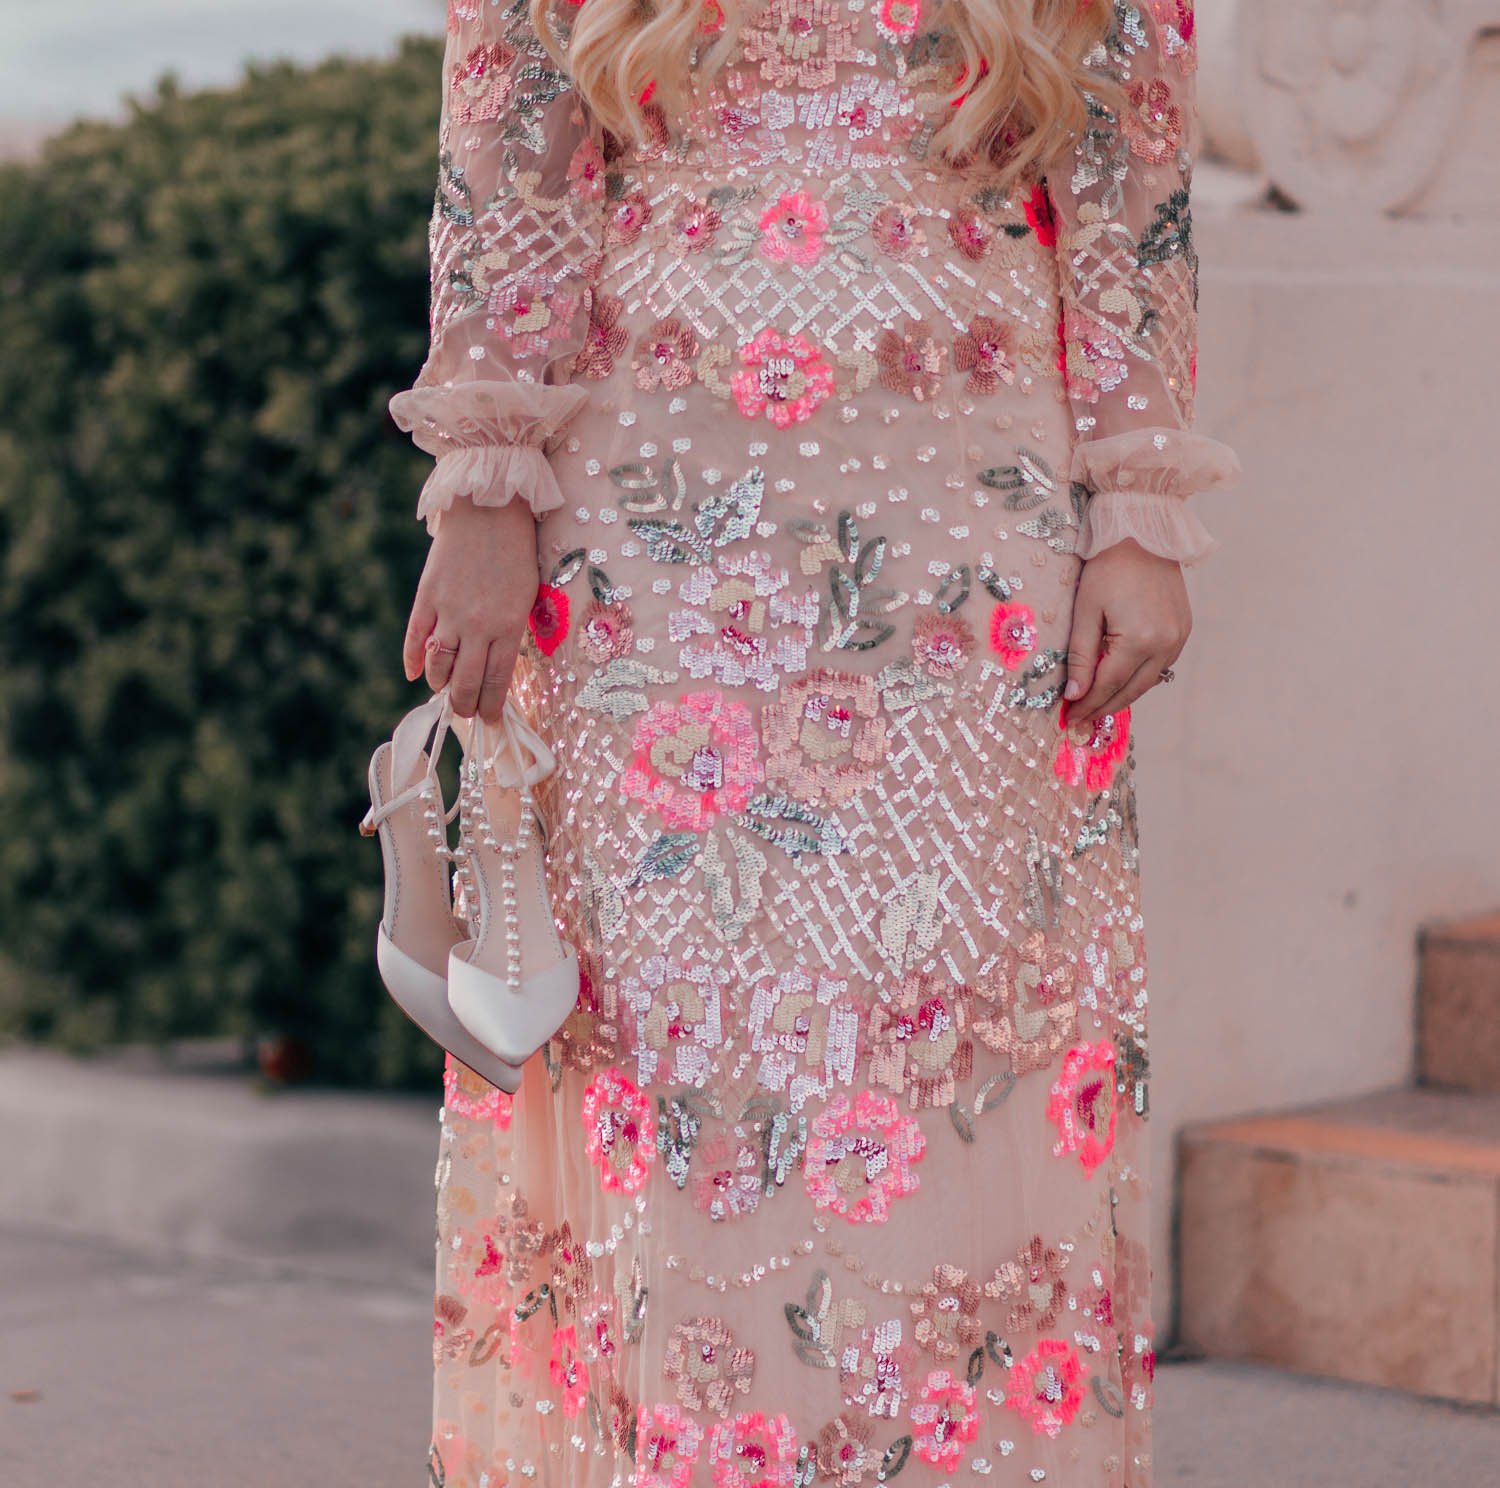 Elizabeth Hugen of Lizzie in Lace shares a floral sequin Needle and Thread dress and white pearl wedding heels along with her spring bucket list